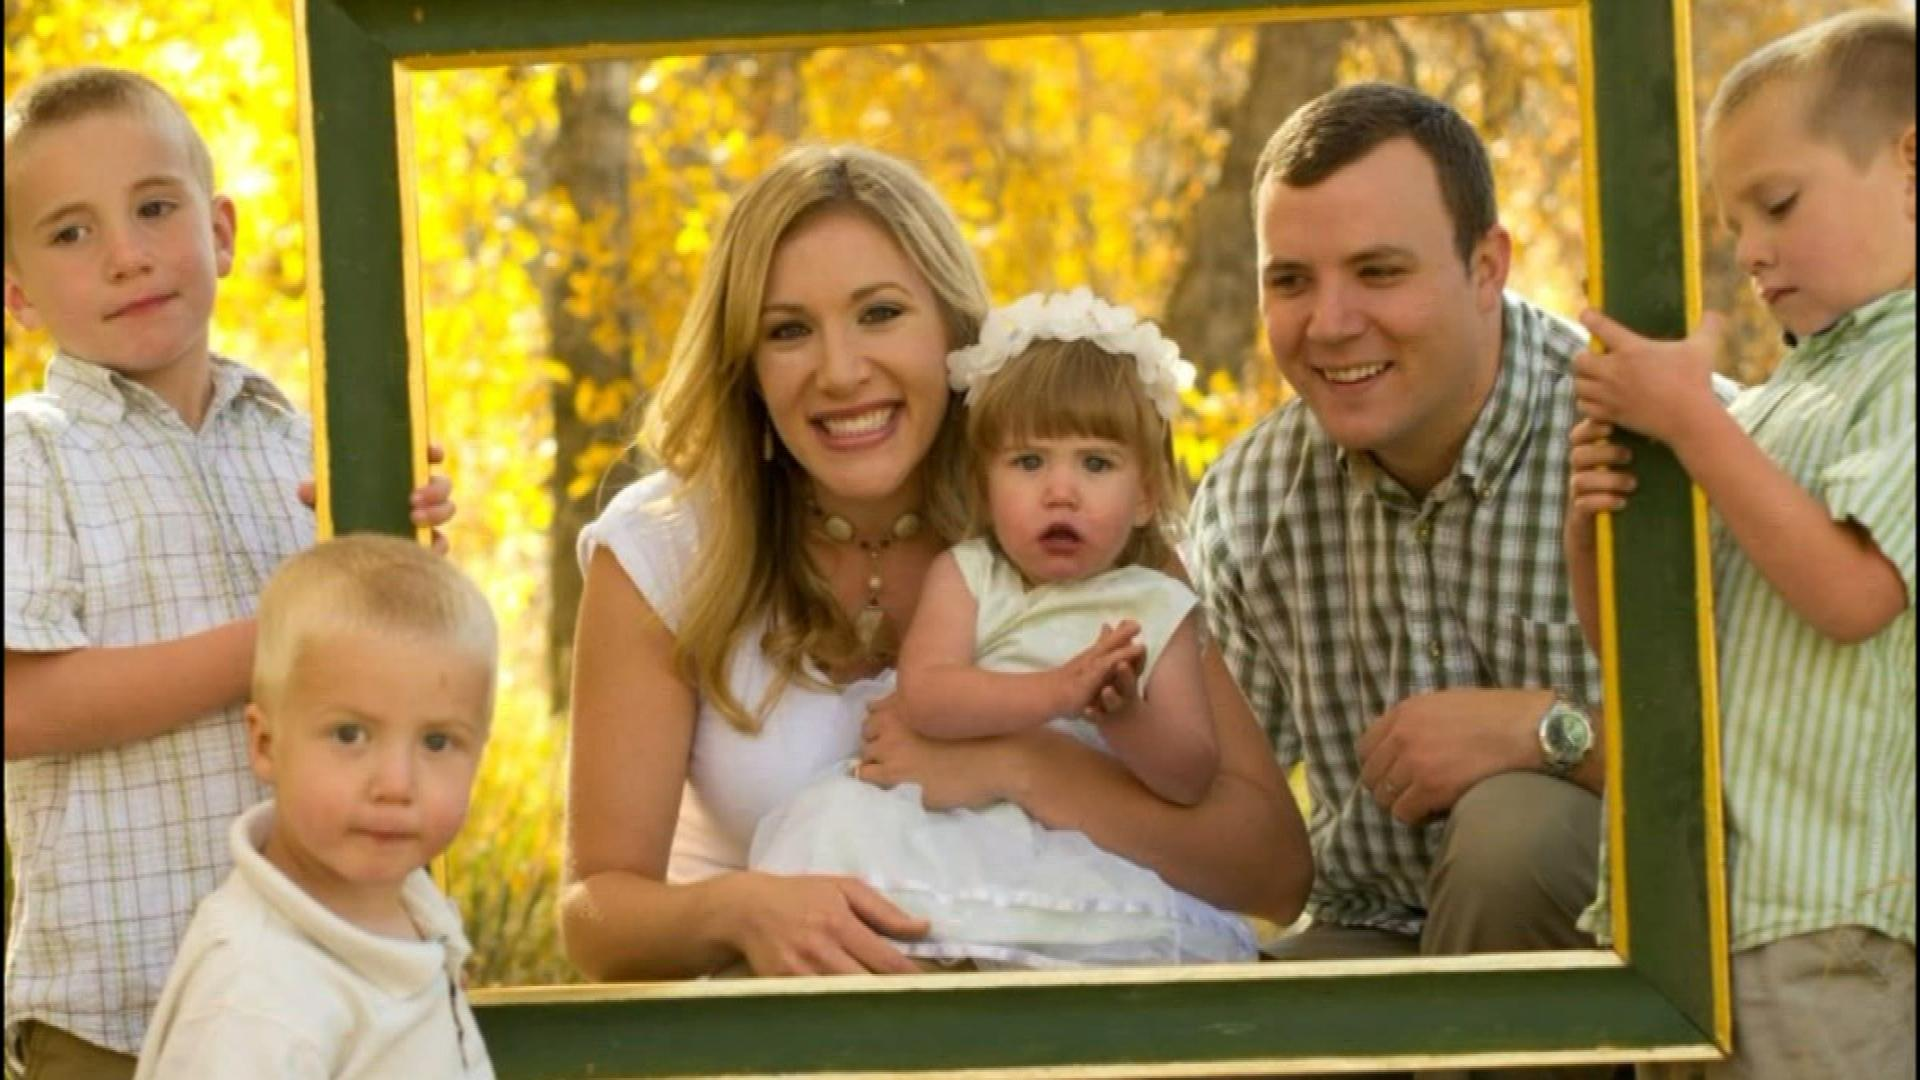 The Choate Family (credit: CBS)